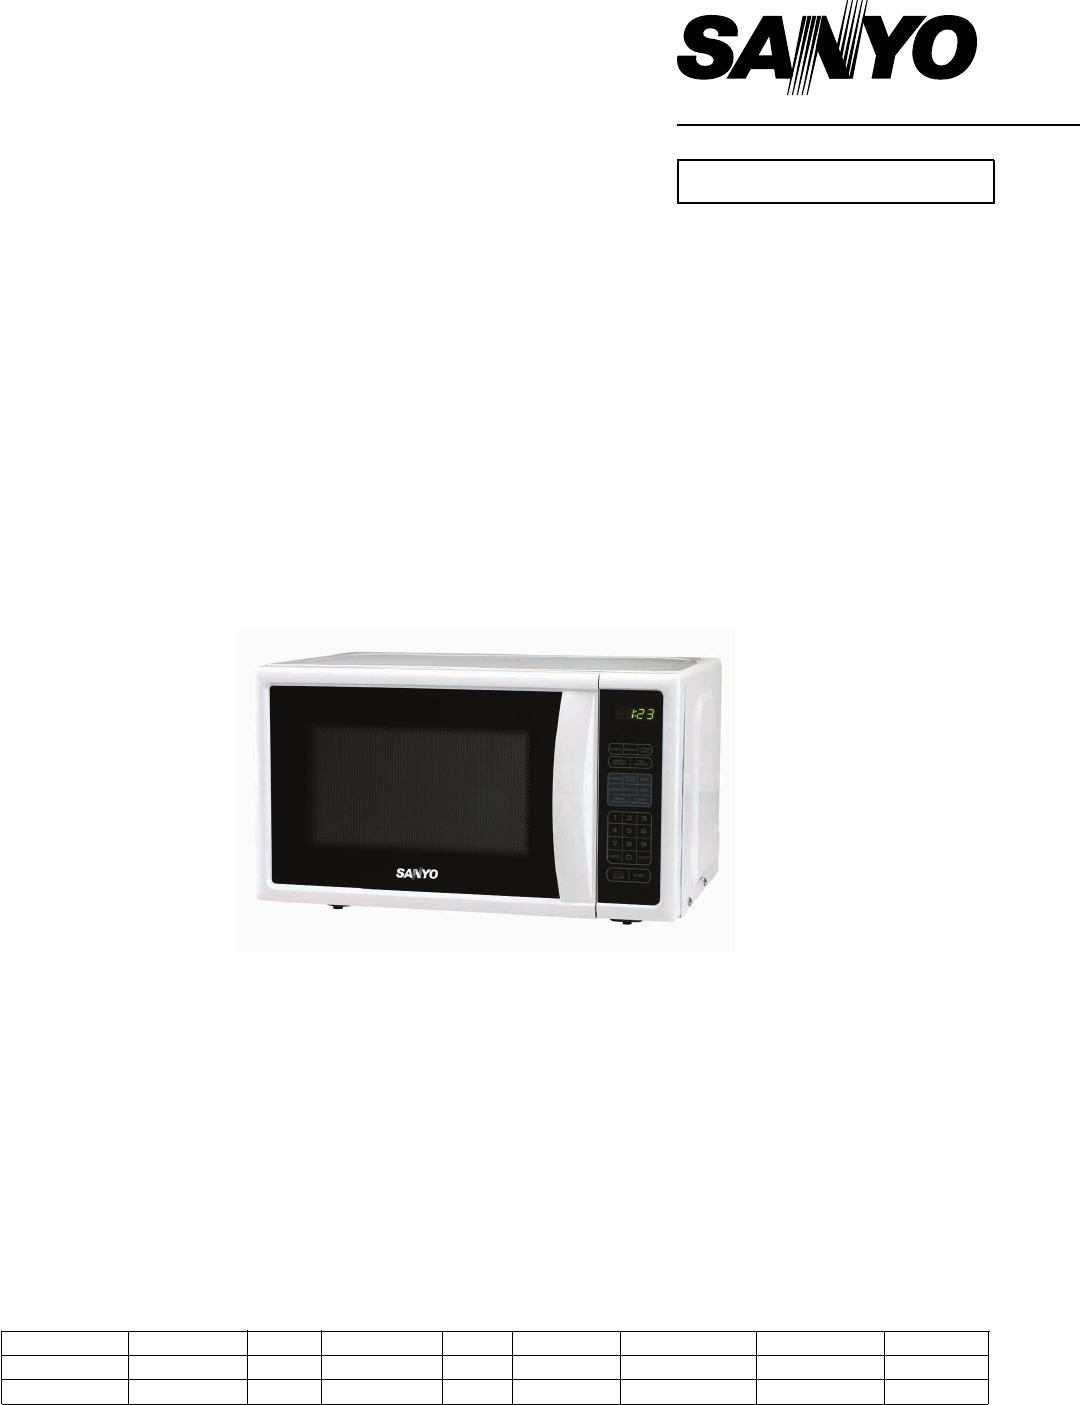 Sanyo Microwave Oven Em S2588w User Guide Manualsonline